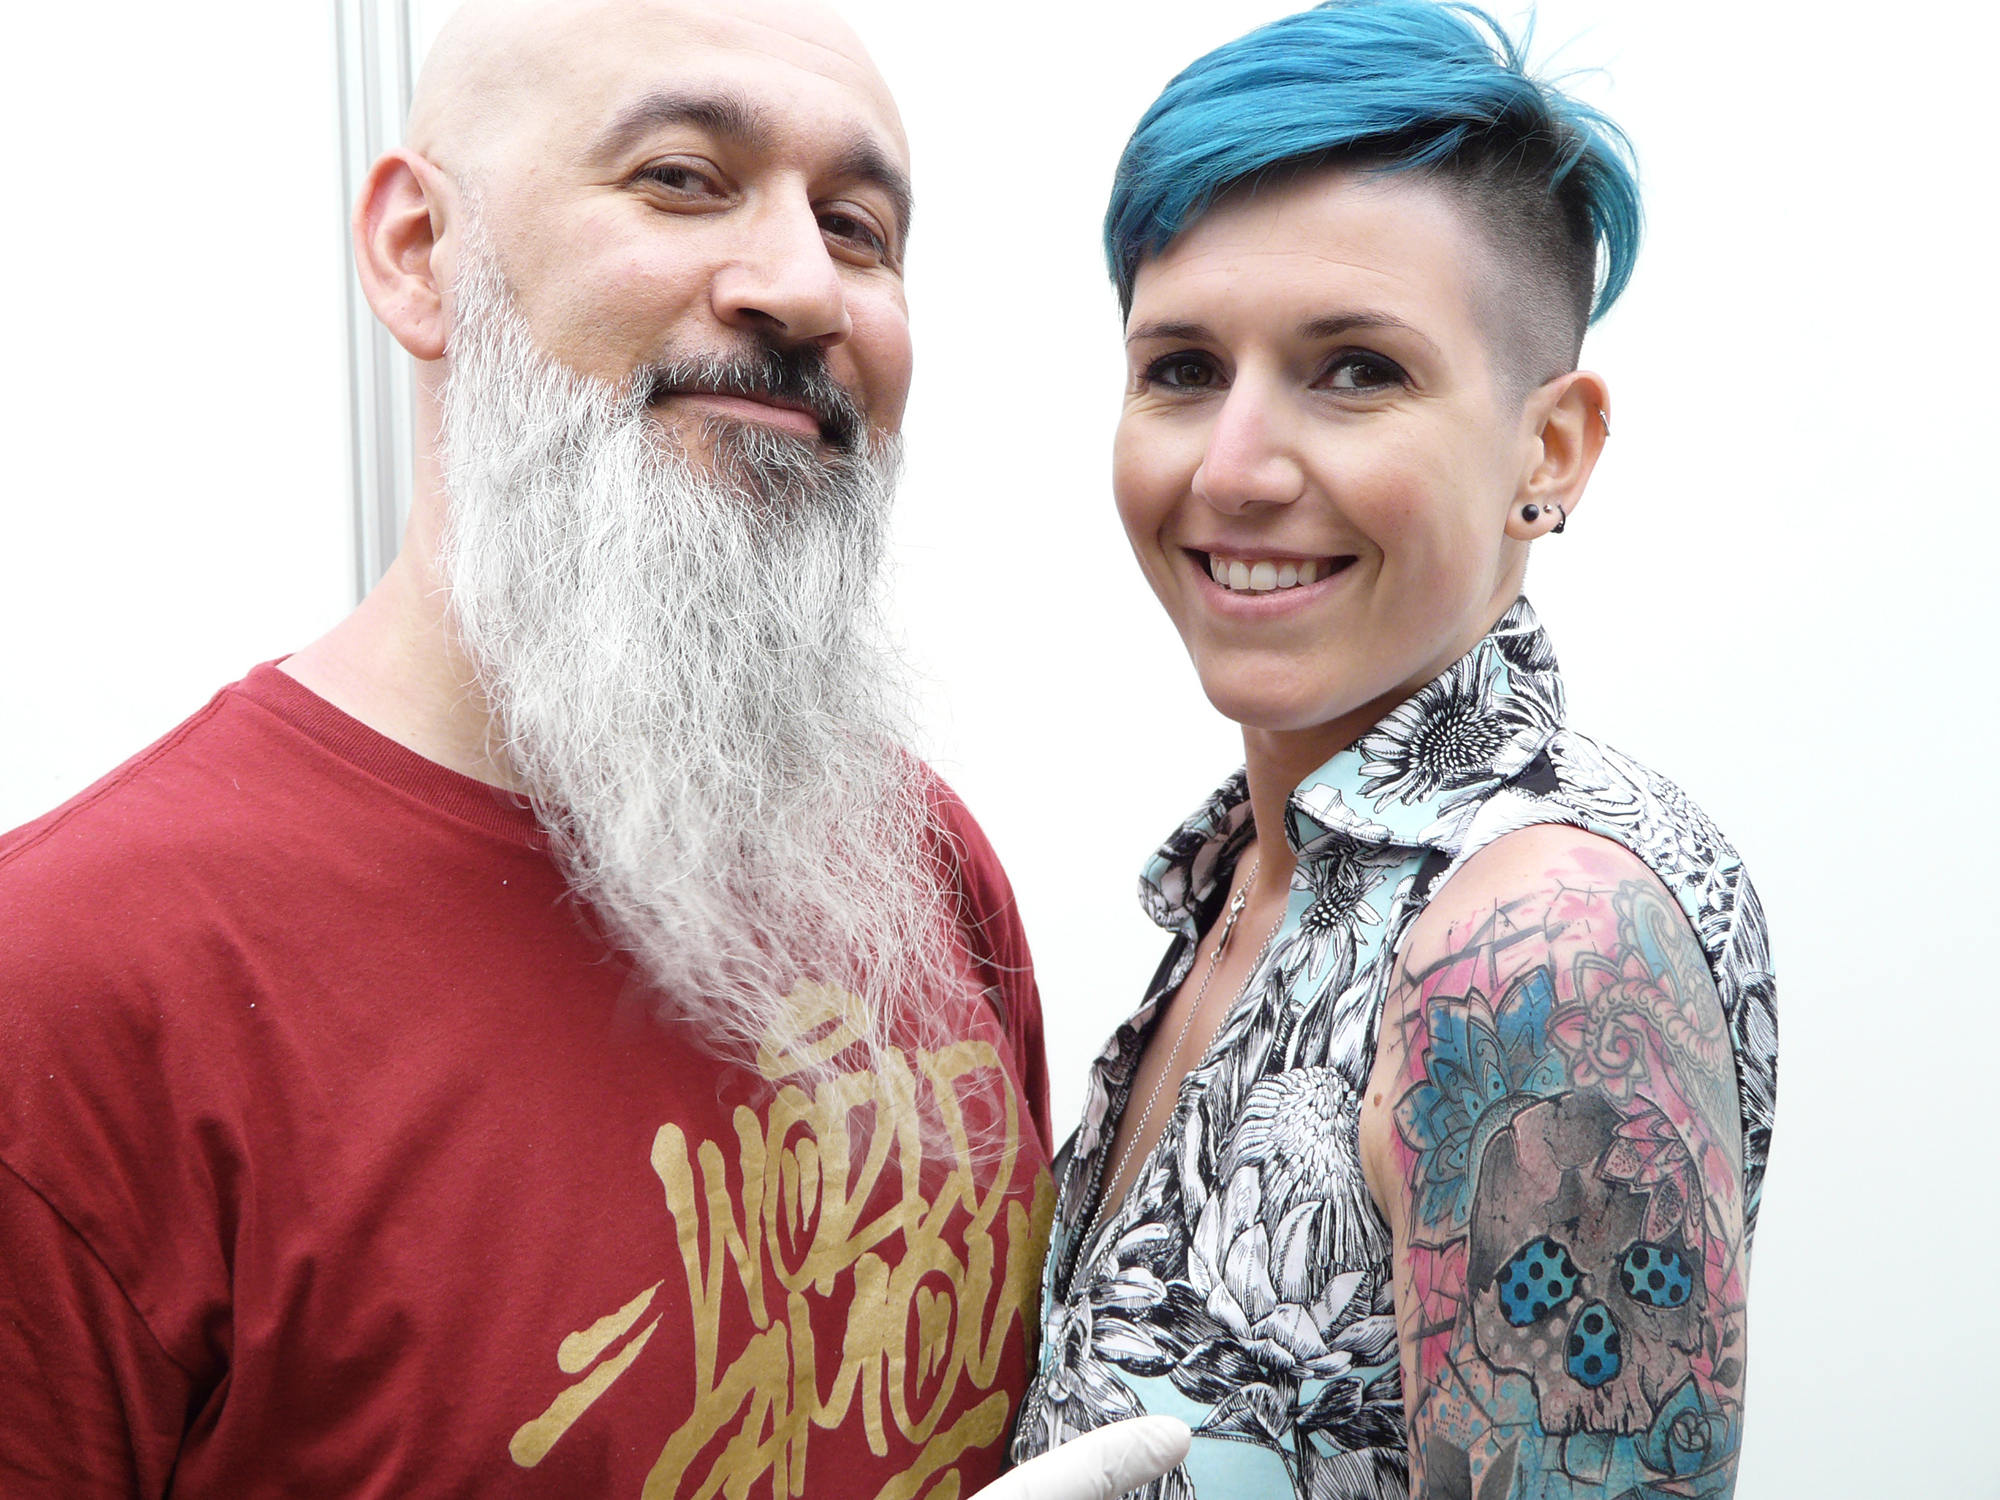 Inside the 1st International Setubal Tattoo Show